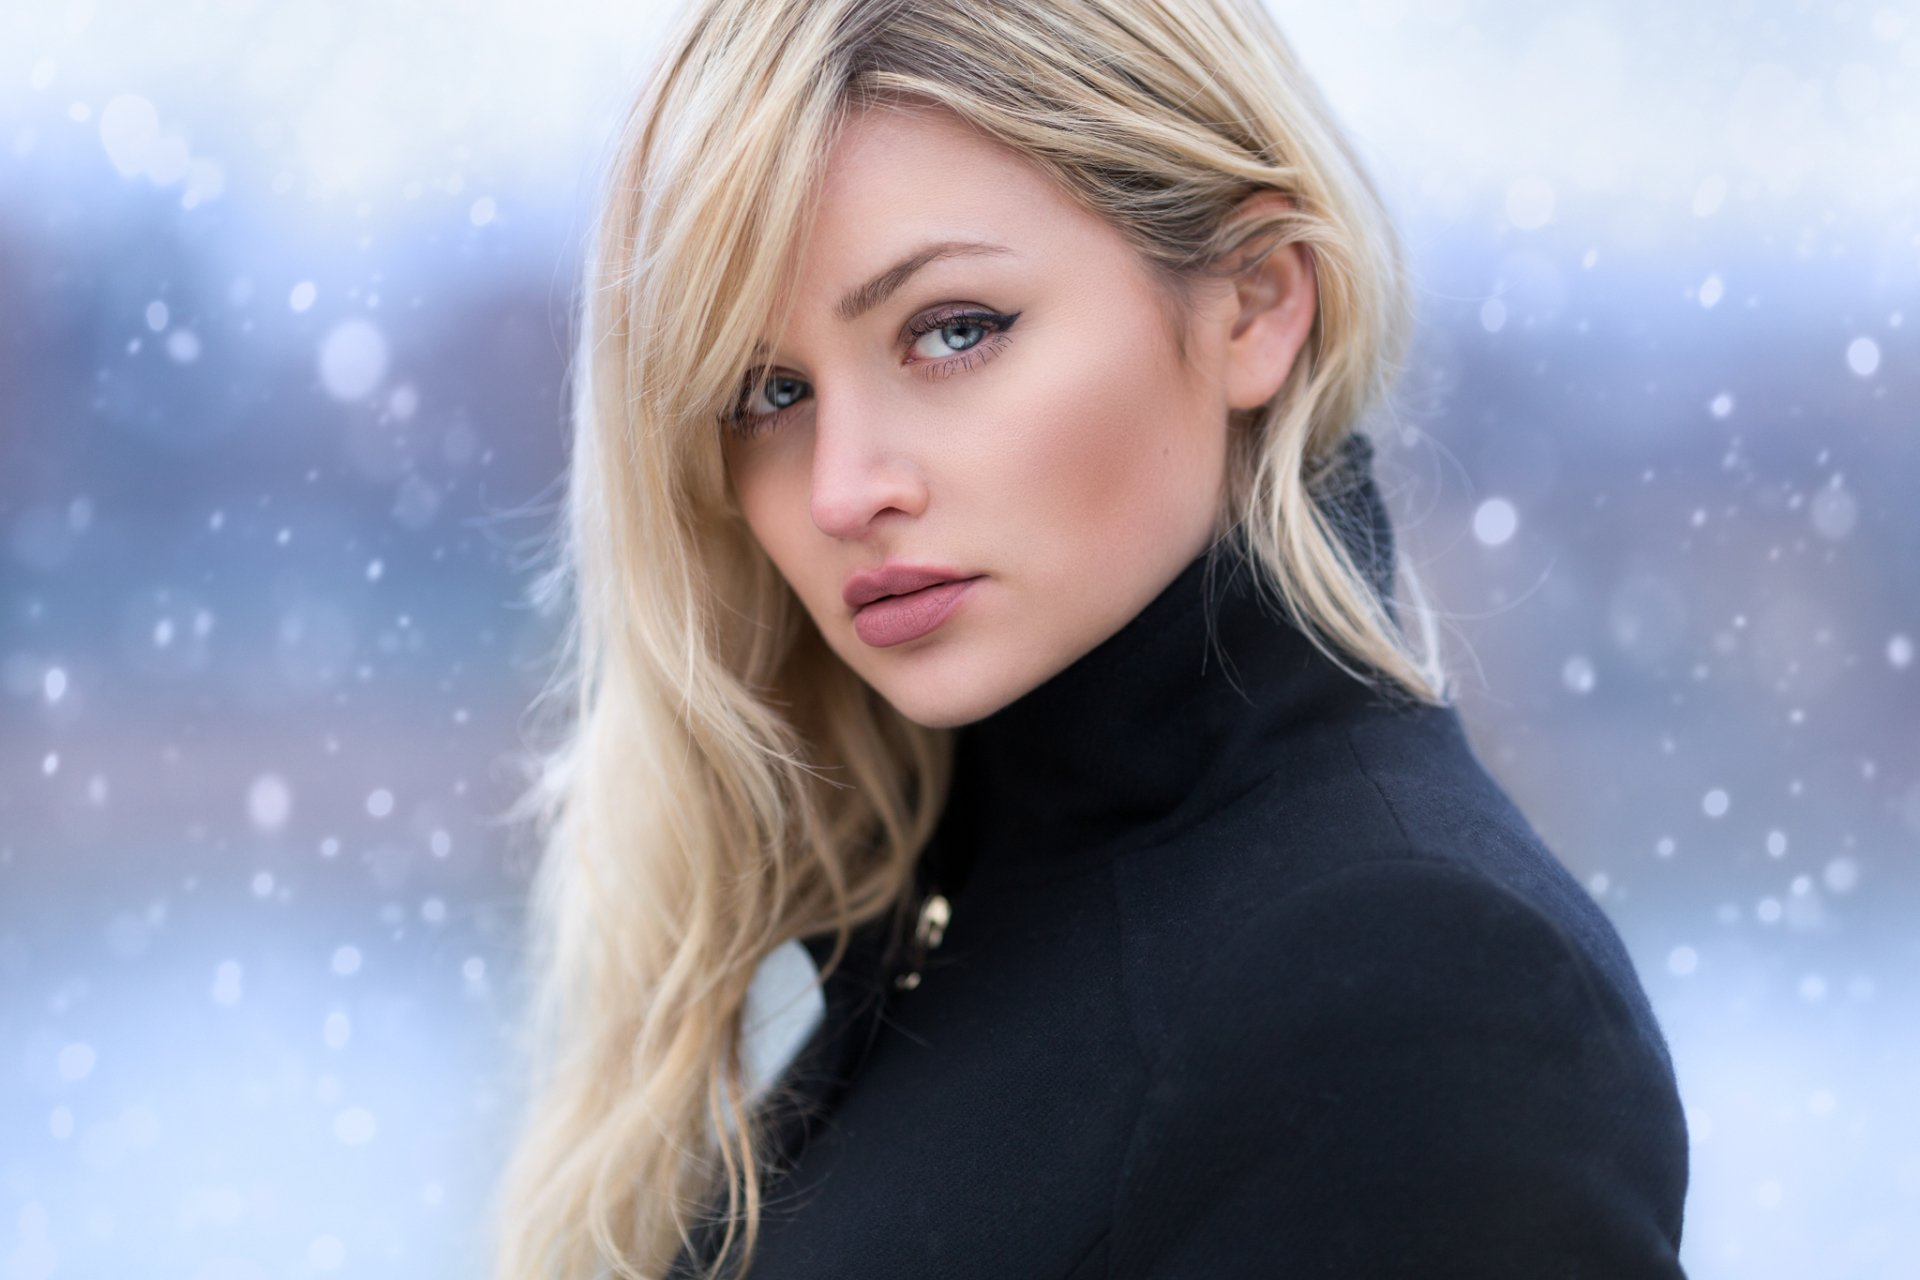 Women - Model  Blue Eyes Woman Girl Blonde Winter Face Snowfall Wallpaper